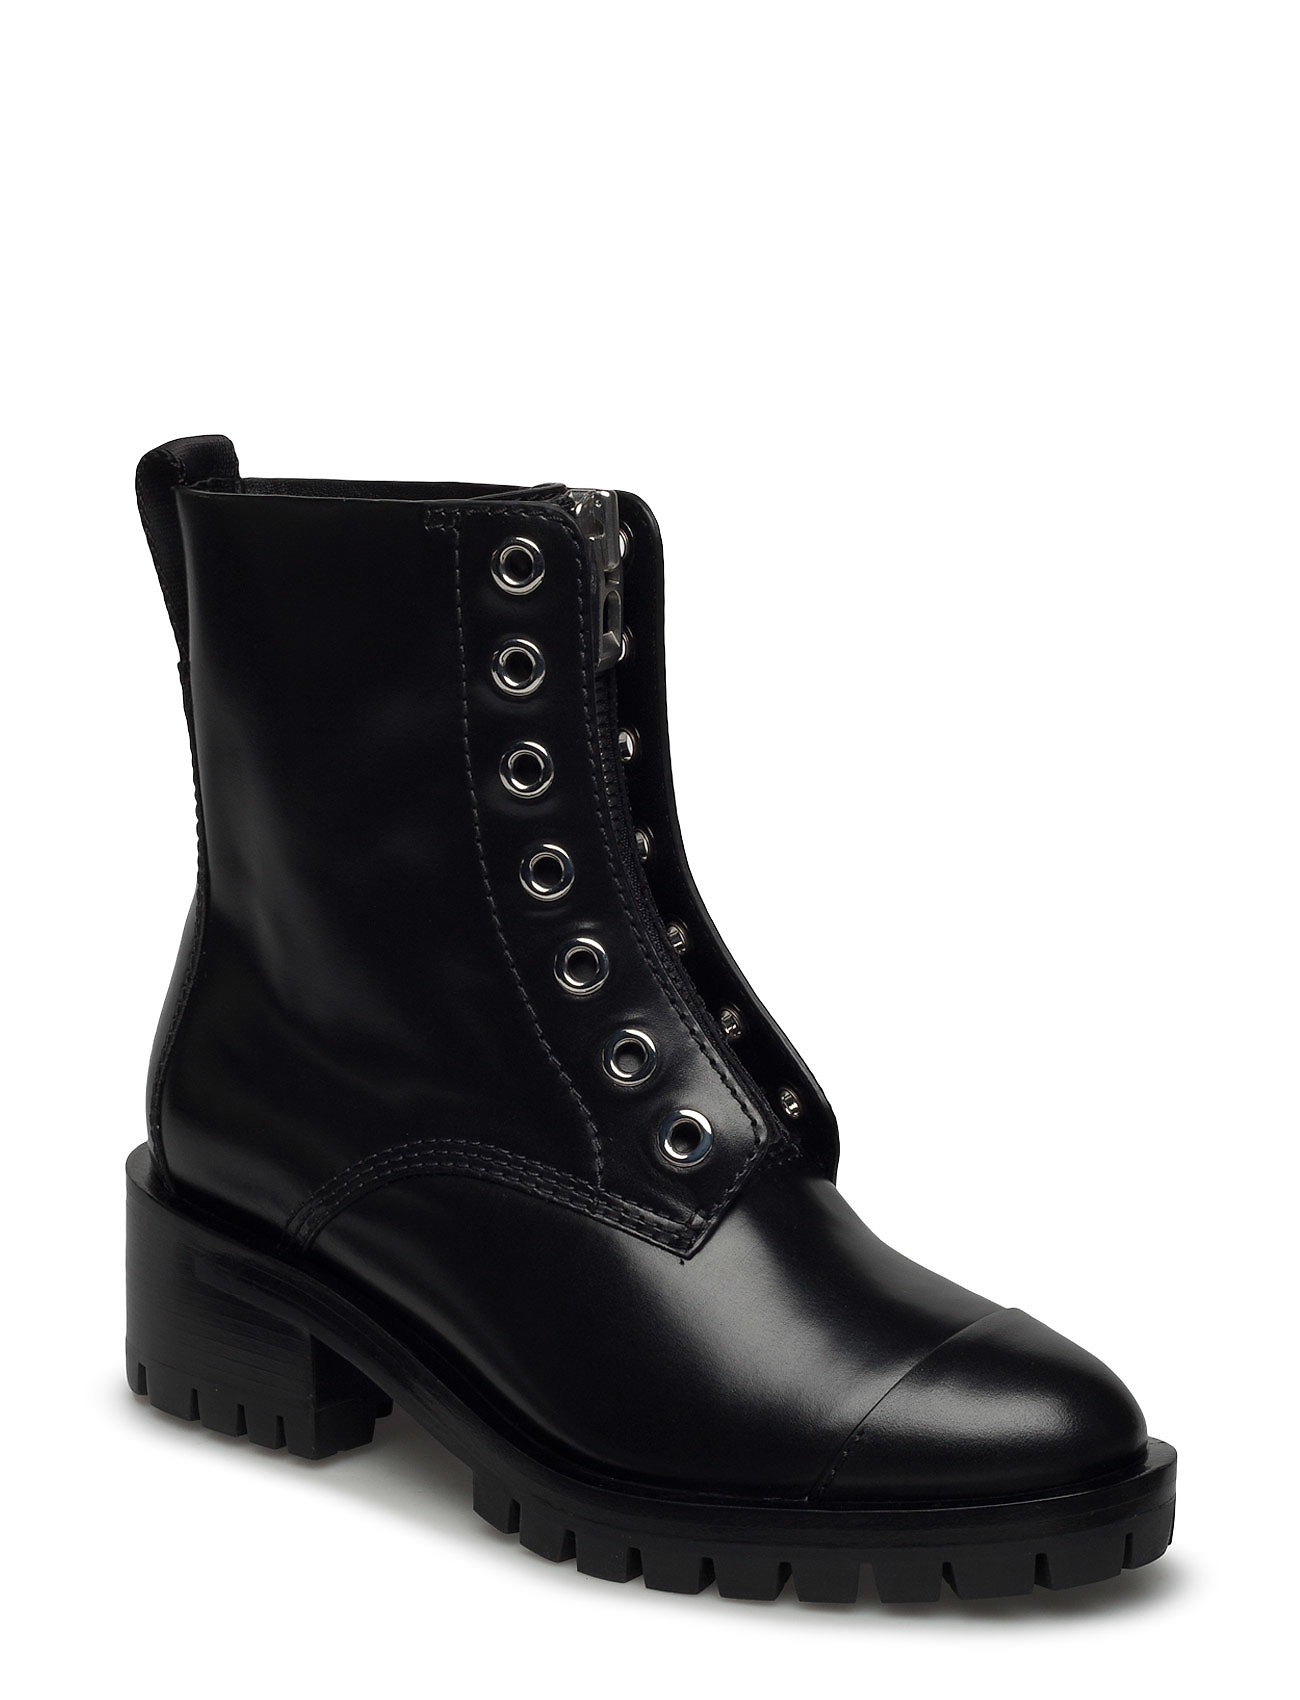 Hayett - lug sole zipper boot with knitted lace fra 3.1 phillip lim på boozt.com dk